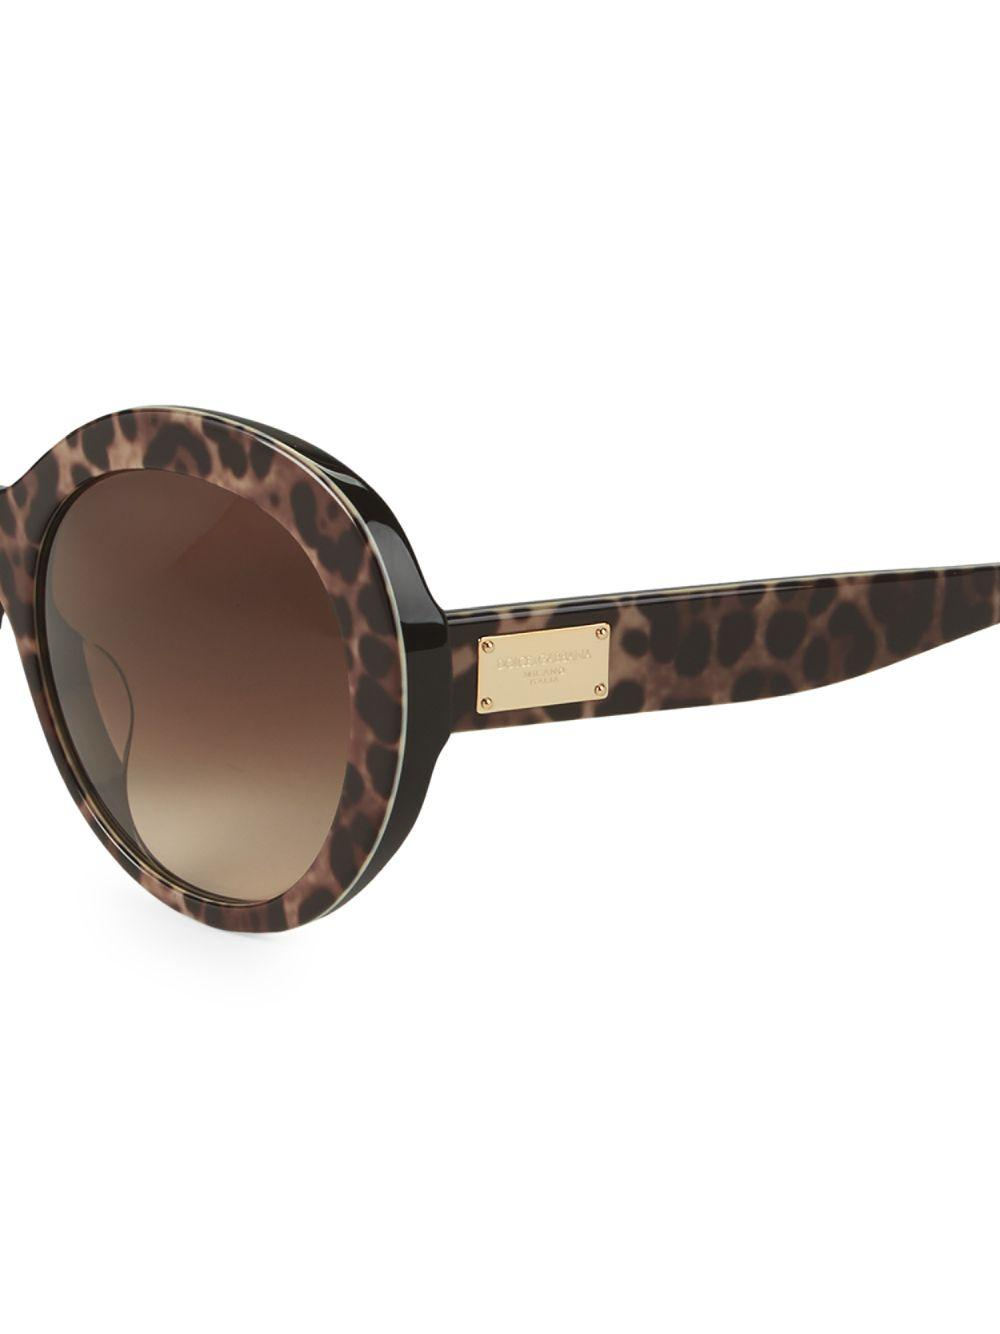 45bacfe37fc2 Lyst - Dolce & Gabbana 57mm Leopard Print Round Sunglasses in Brown